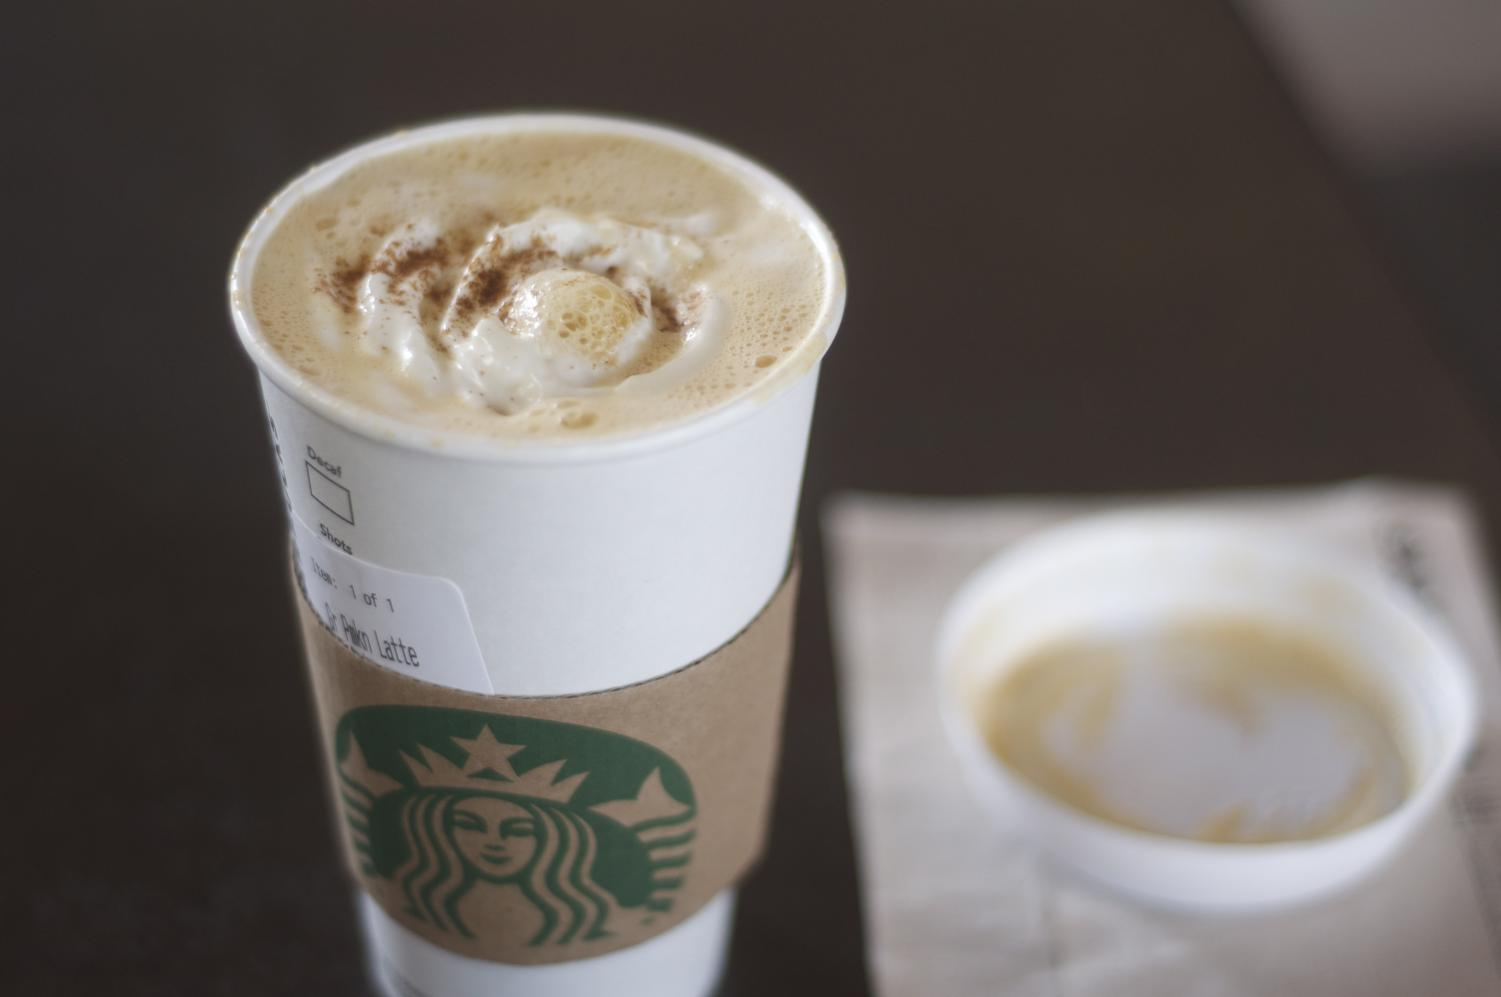 The infamous PSL from Starbucks shown to be seasonal with a dash of cinnamon on top of the drink.